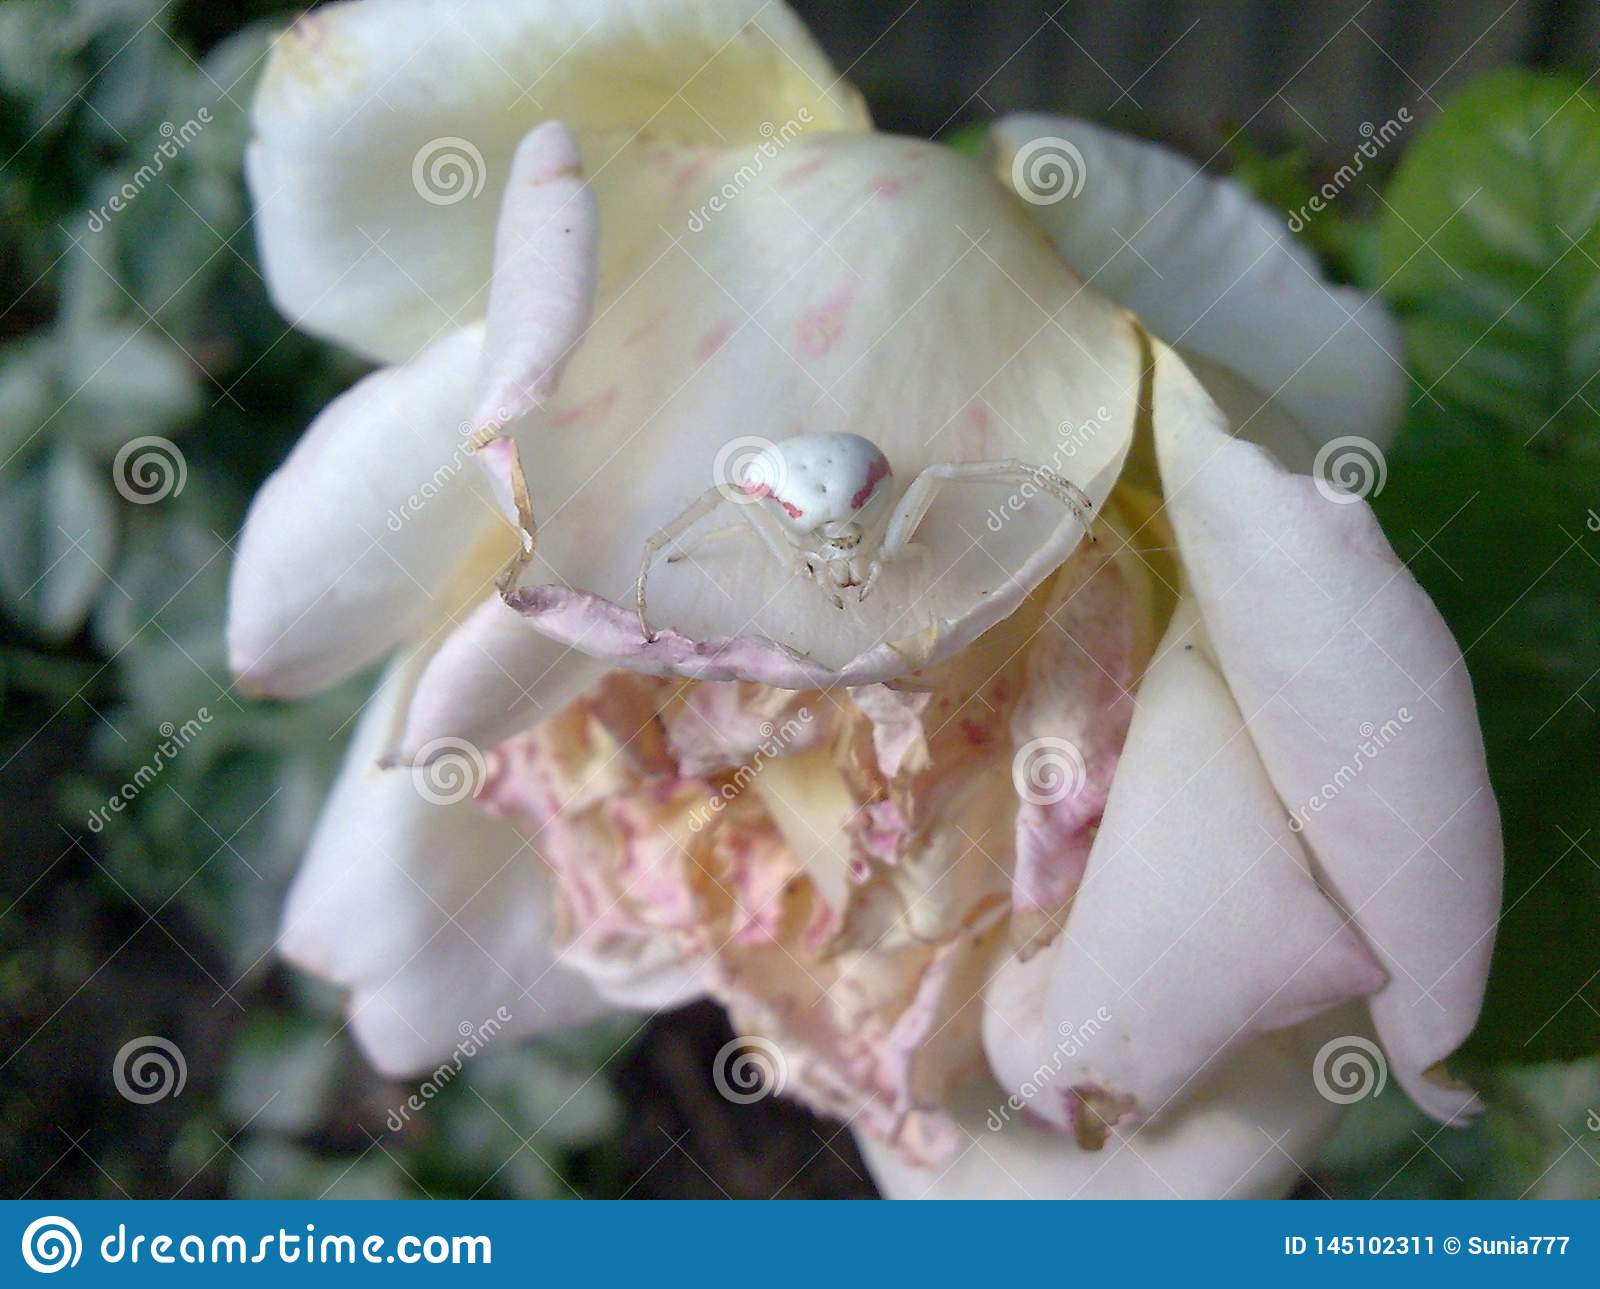 Full match white spider and faded white rose in the garden